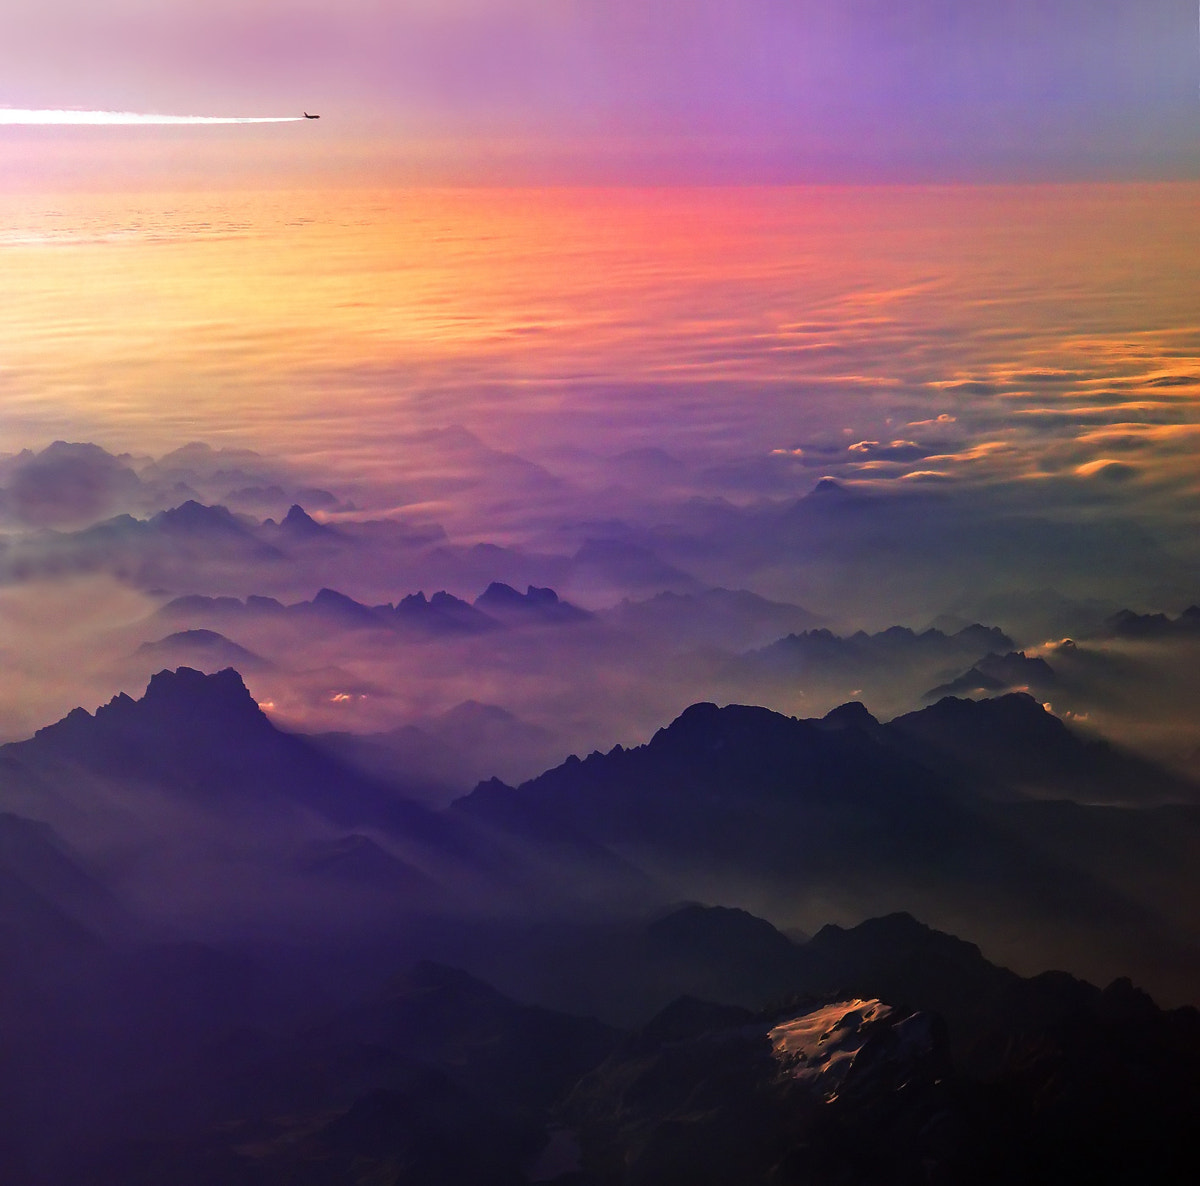 Photograph Flying to Somewere by Antonio Zarli on 500px